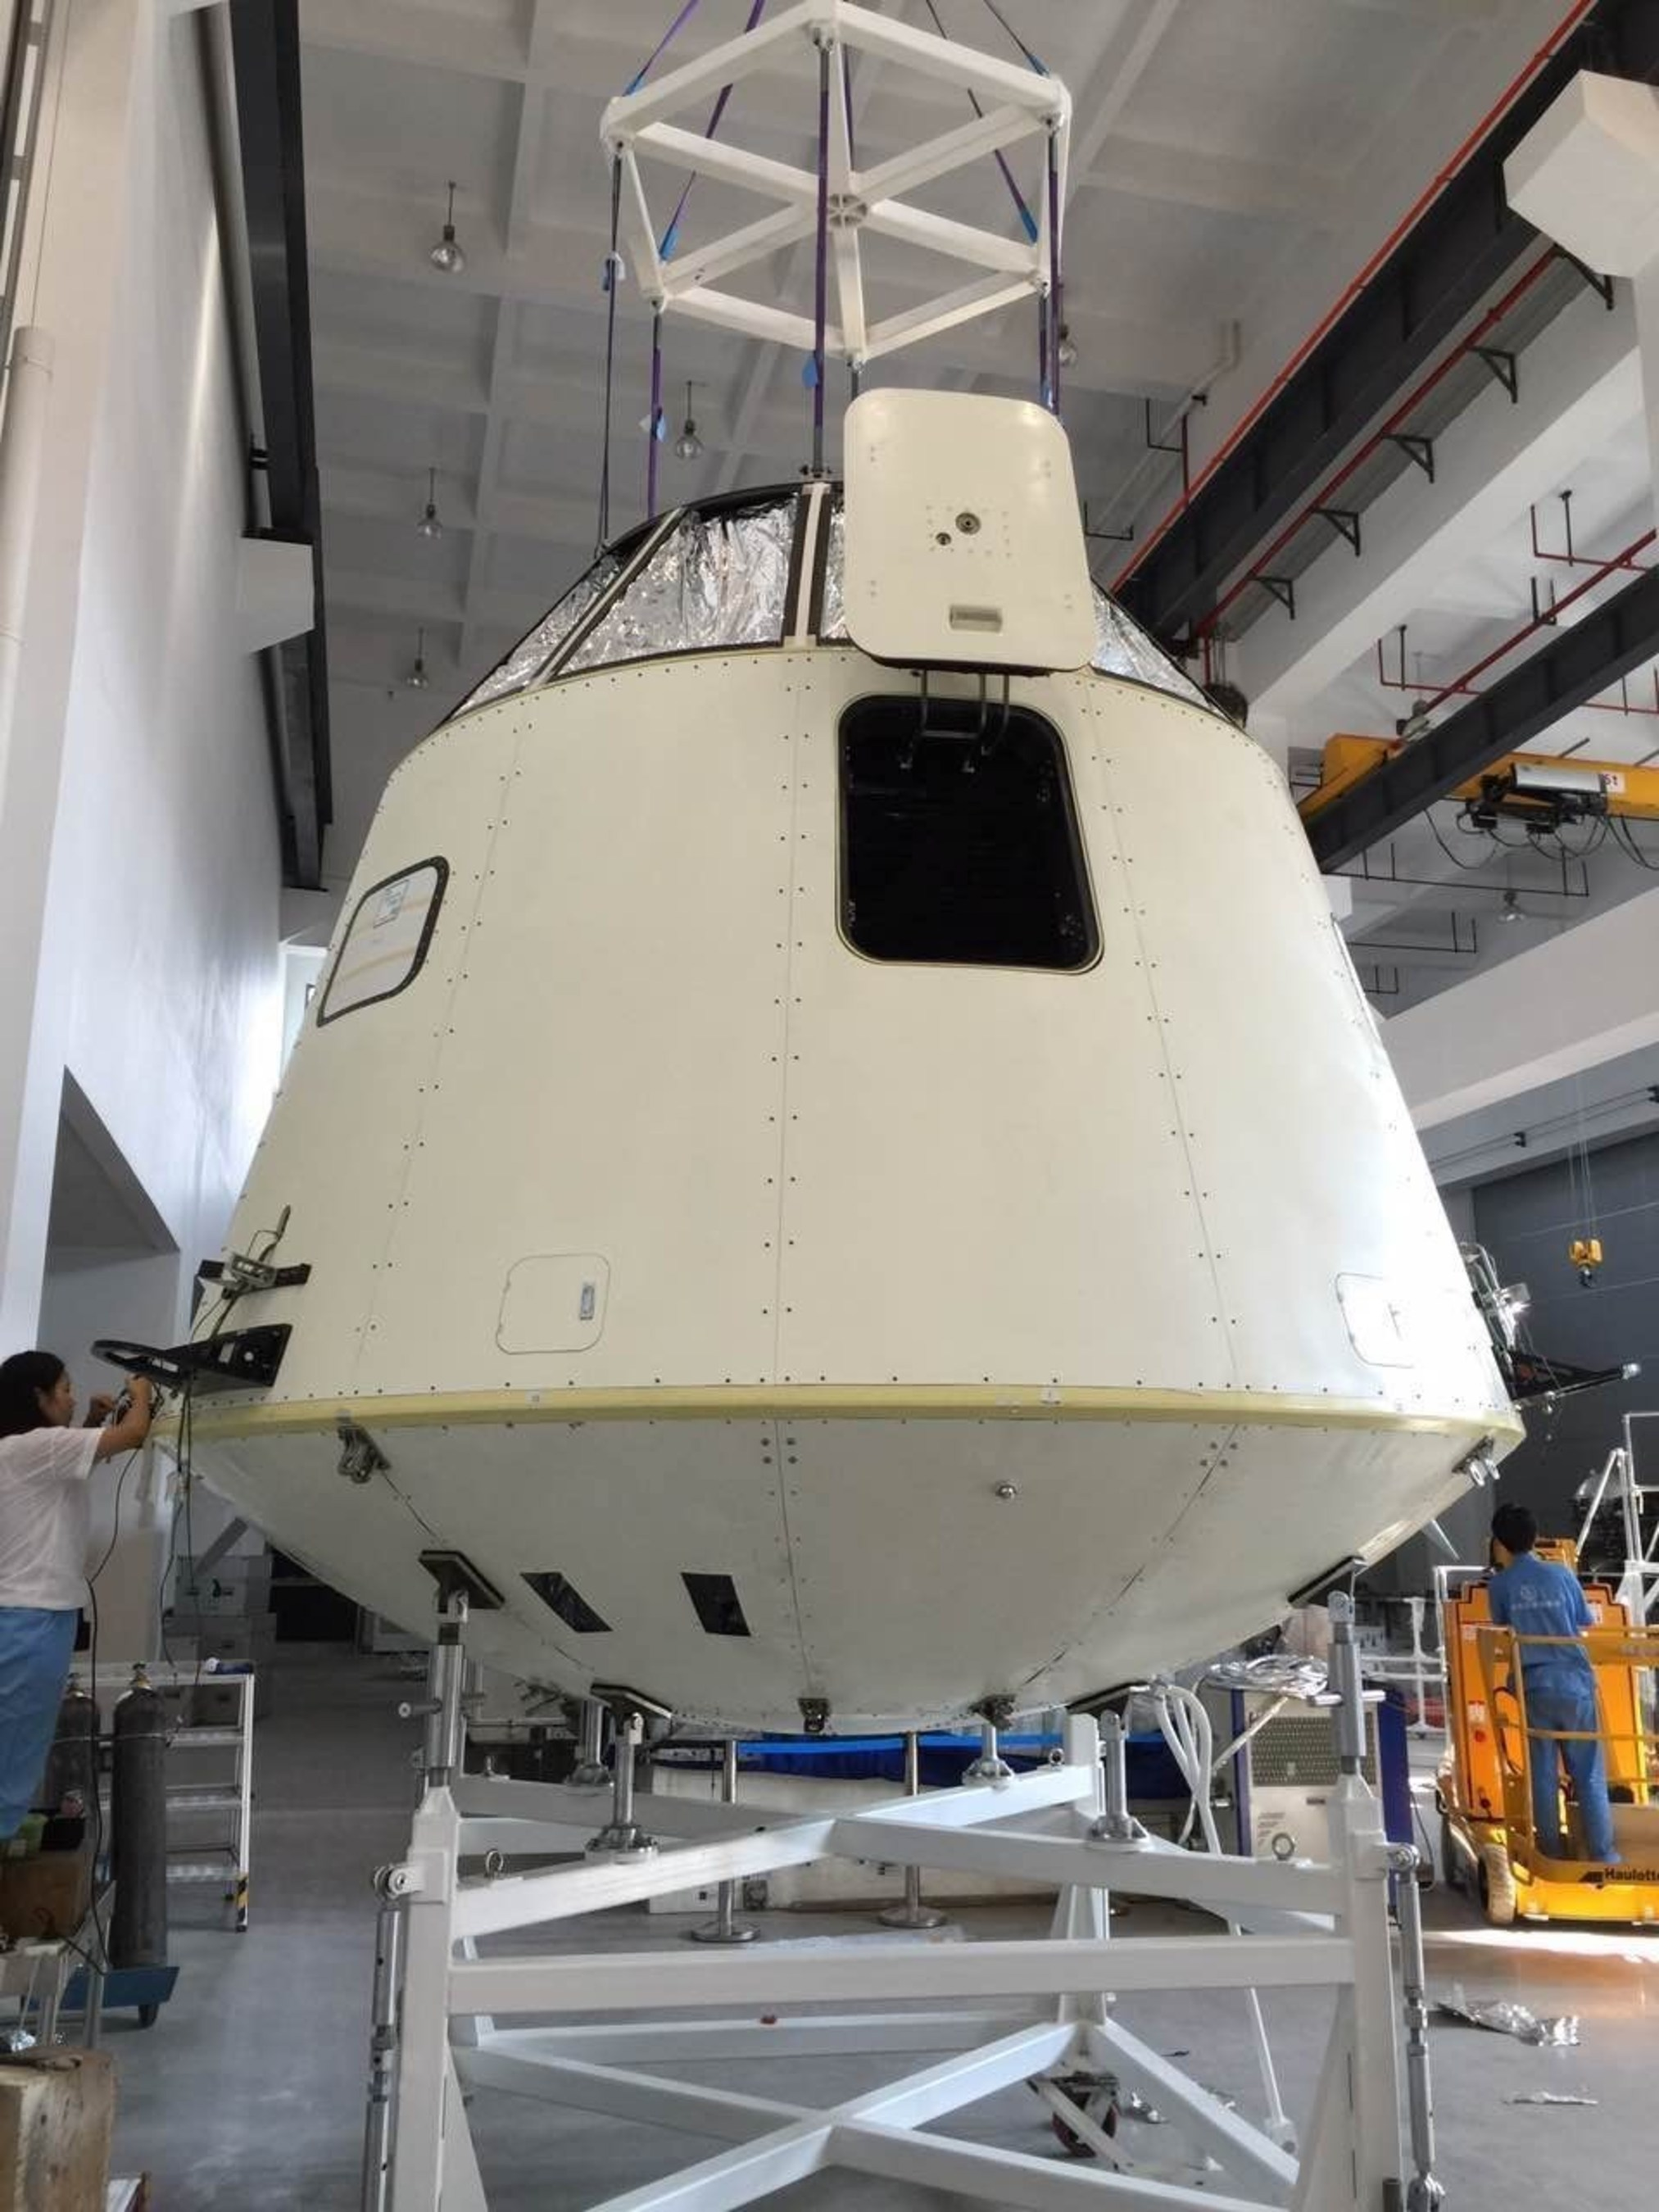 Traveler II Beta's main subsystems have been completed and are in the final stage of assembly and testing.